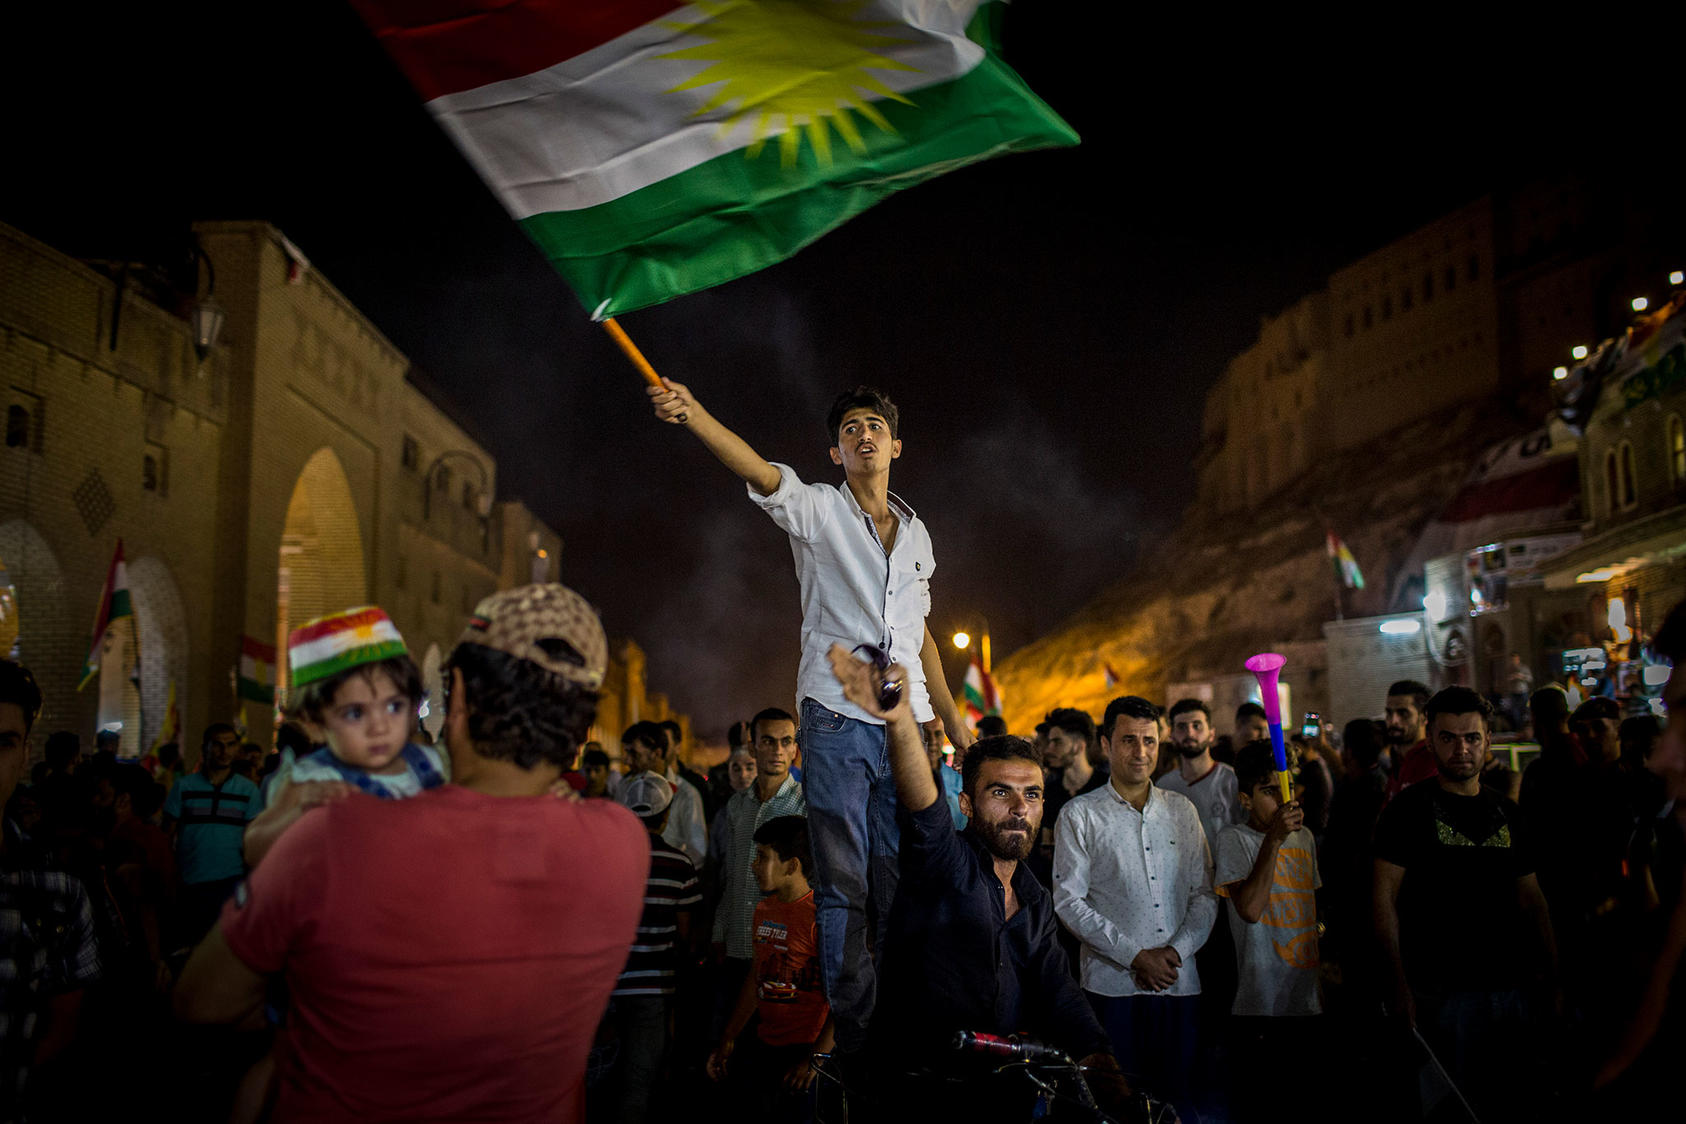 A man waves the Kurdish flag after the results of an independence referendum were announced in Irbil, Iraq, Sept. 27, 2017